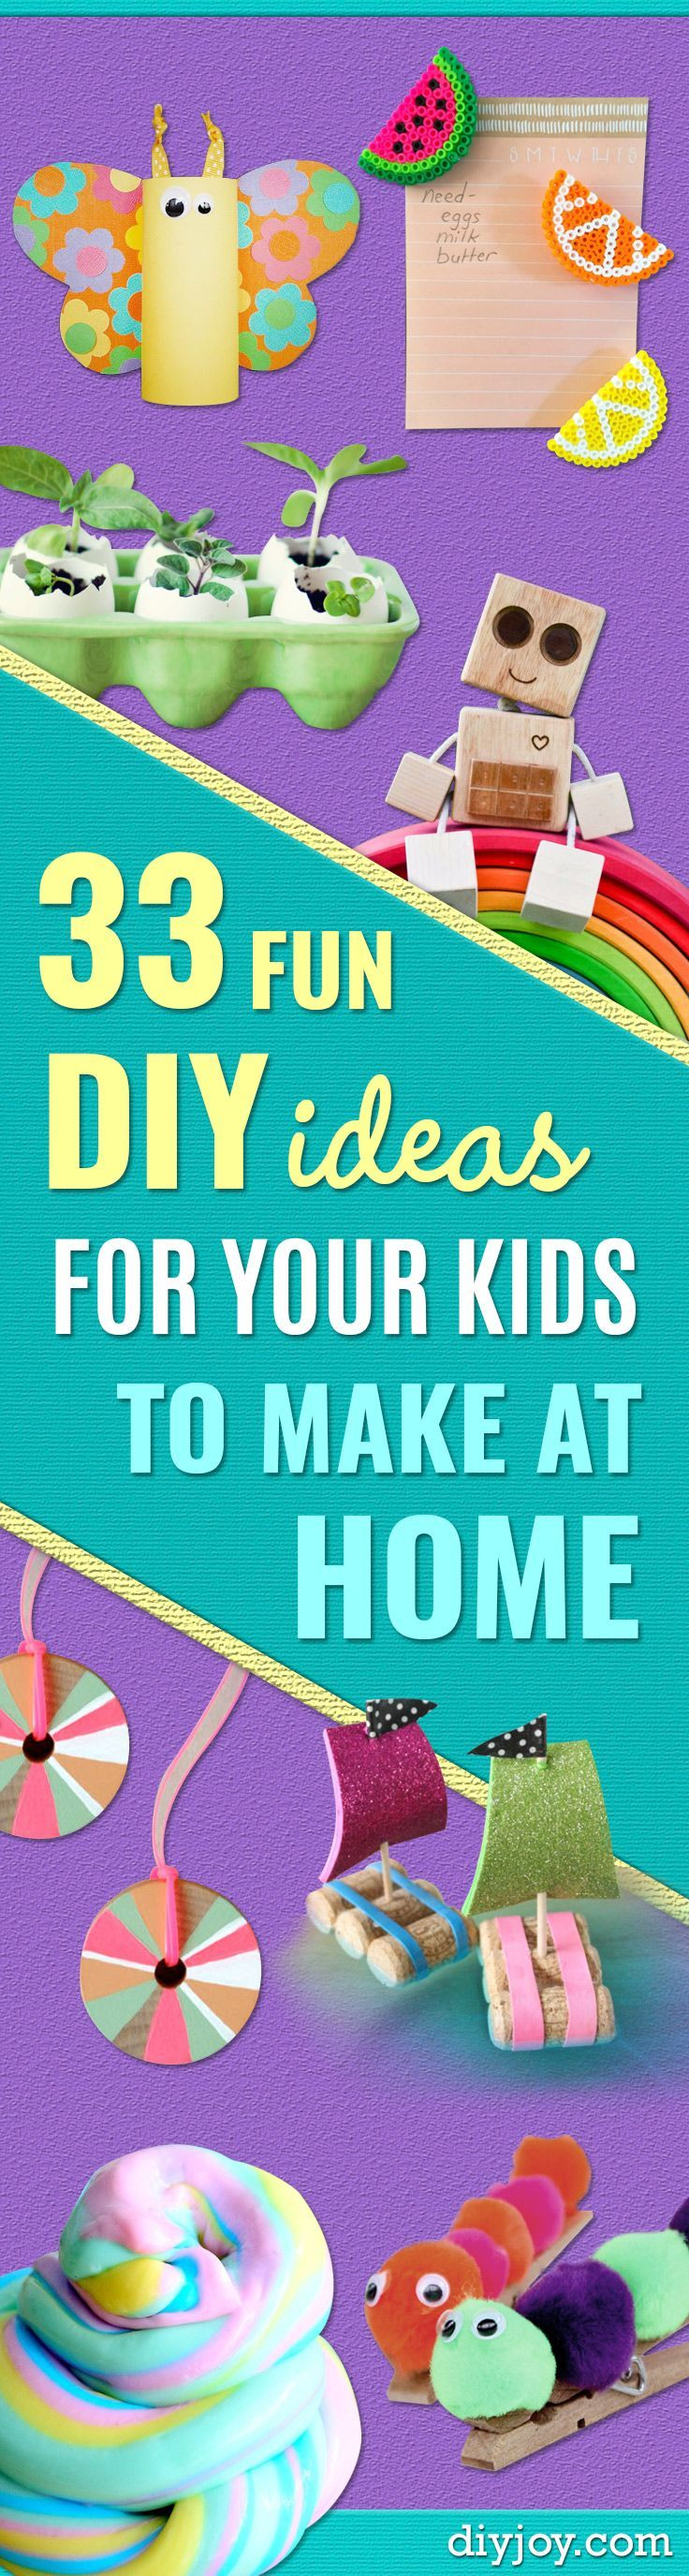 Craft Ideas for Children - Cute Paper Crafts, Fall and Winter Fun, Things For Toddlers, Babies, Boys and Girls to Make At Home - Easy DIY Ideas for Kids http://diyjoy.com/diy-ideas-for-kids-to-make